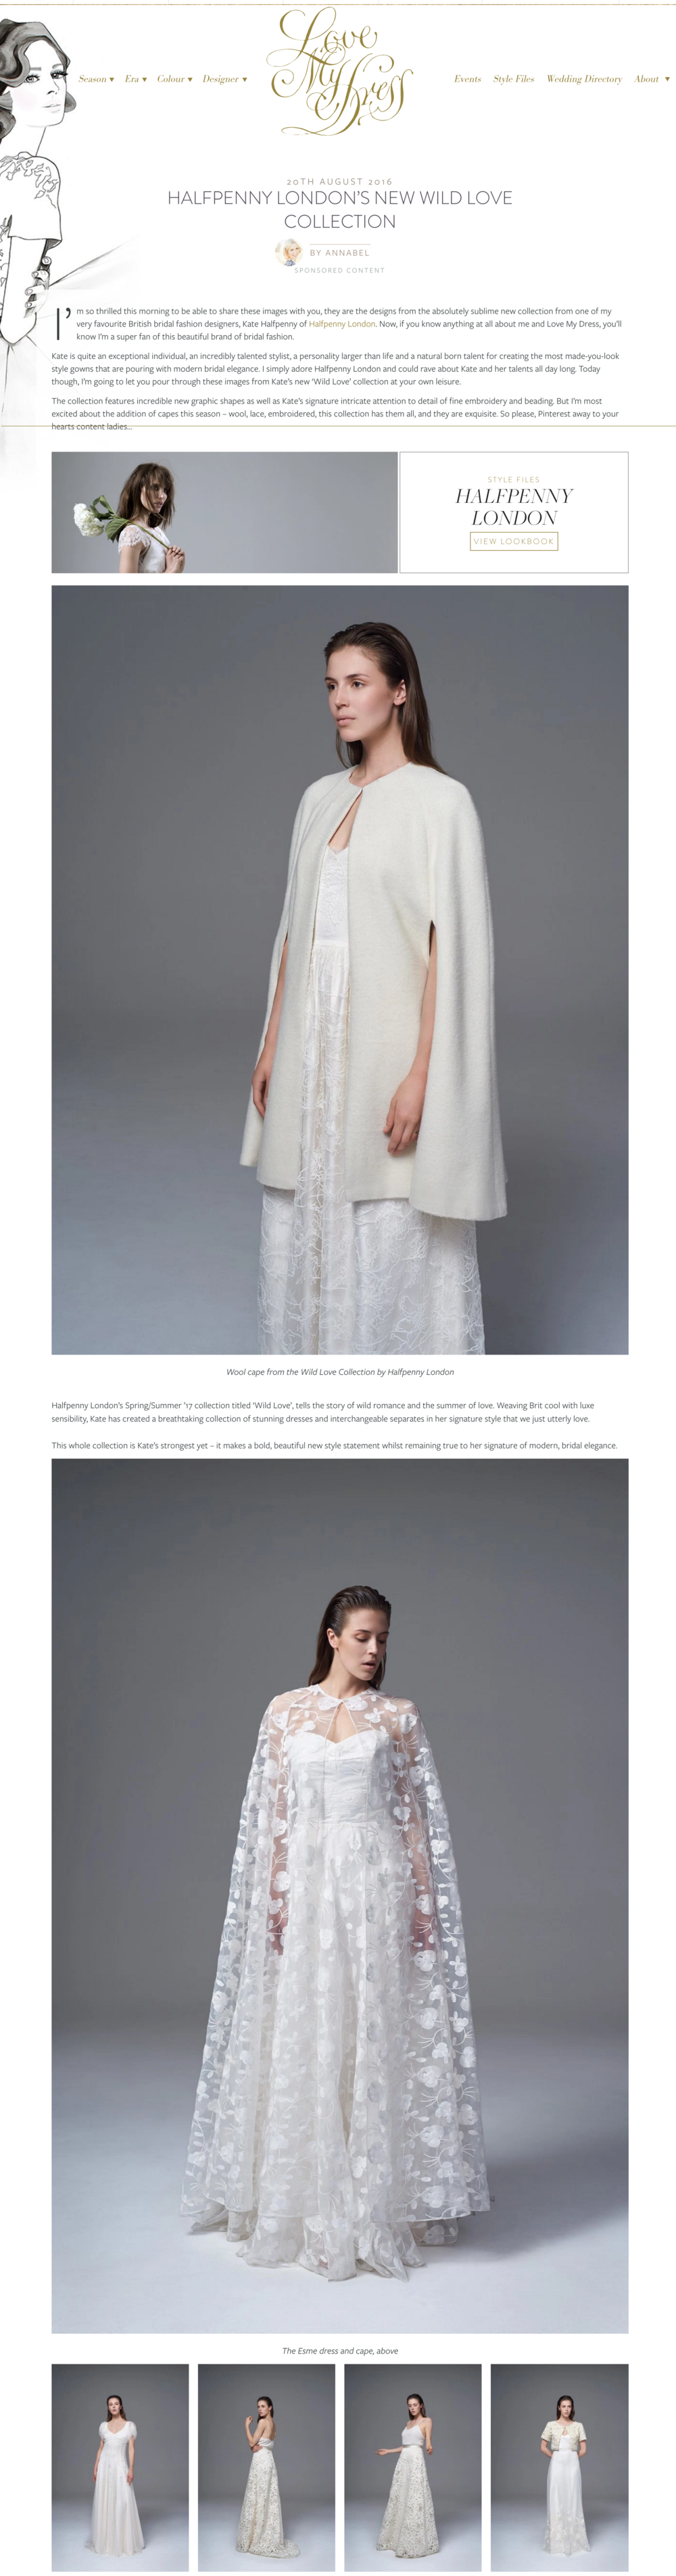 LMD - Halfpenny London's New Wild Love Collection   Love My Dress® UK Wedding Blog.png